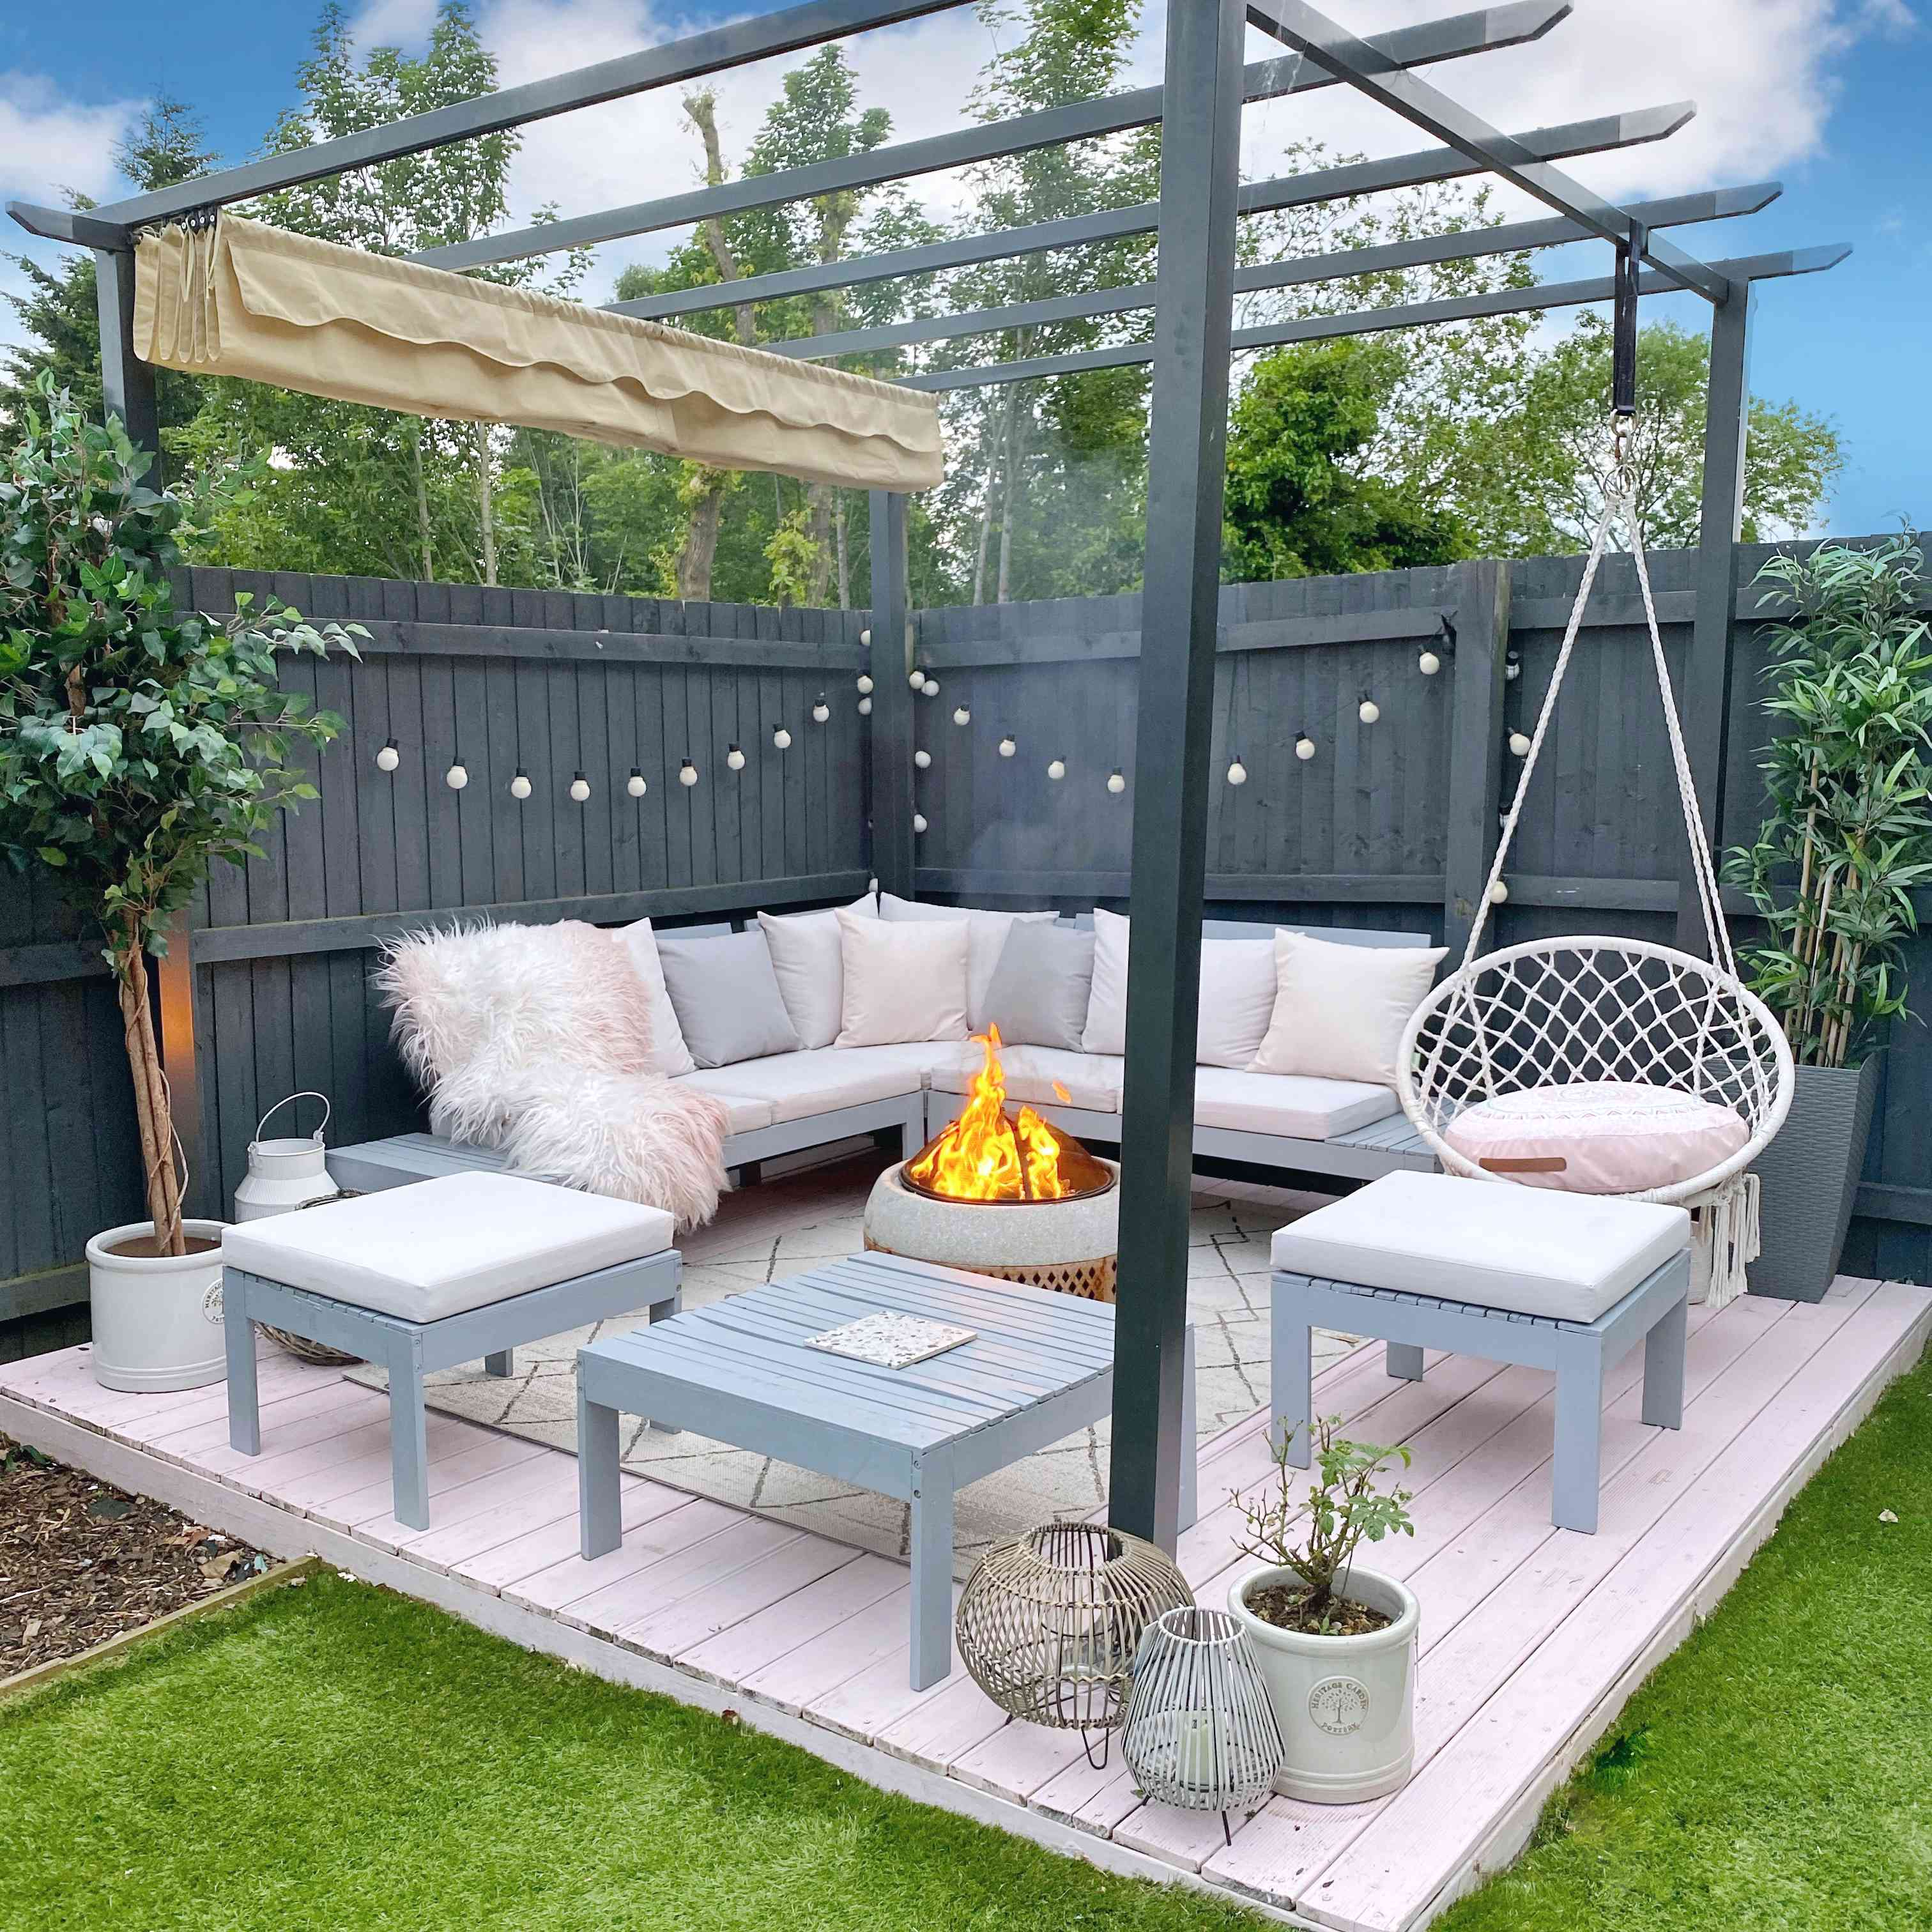 a patio with a gray fence and pergola